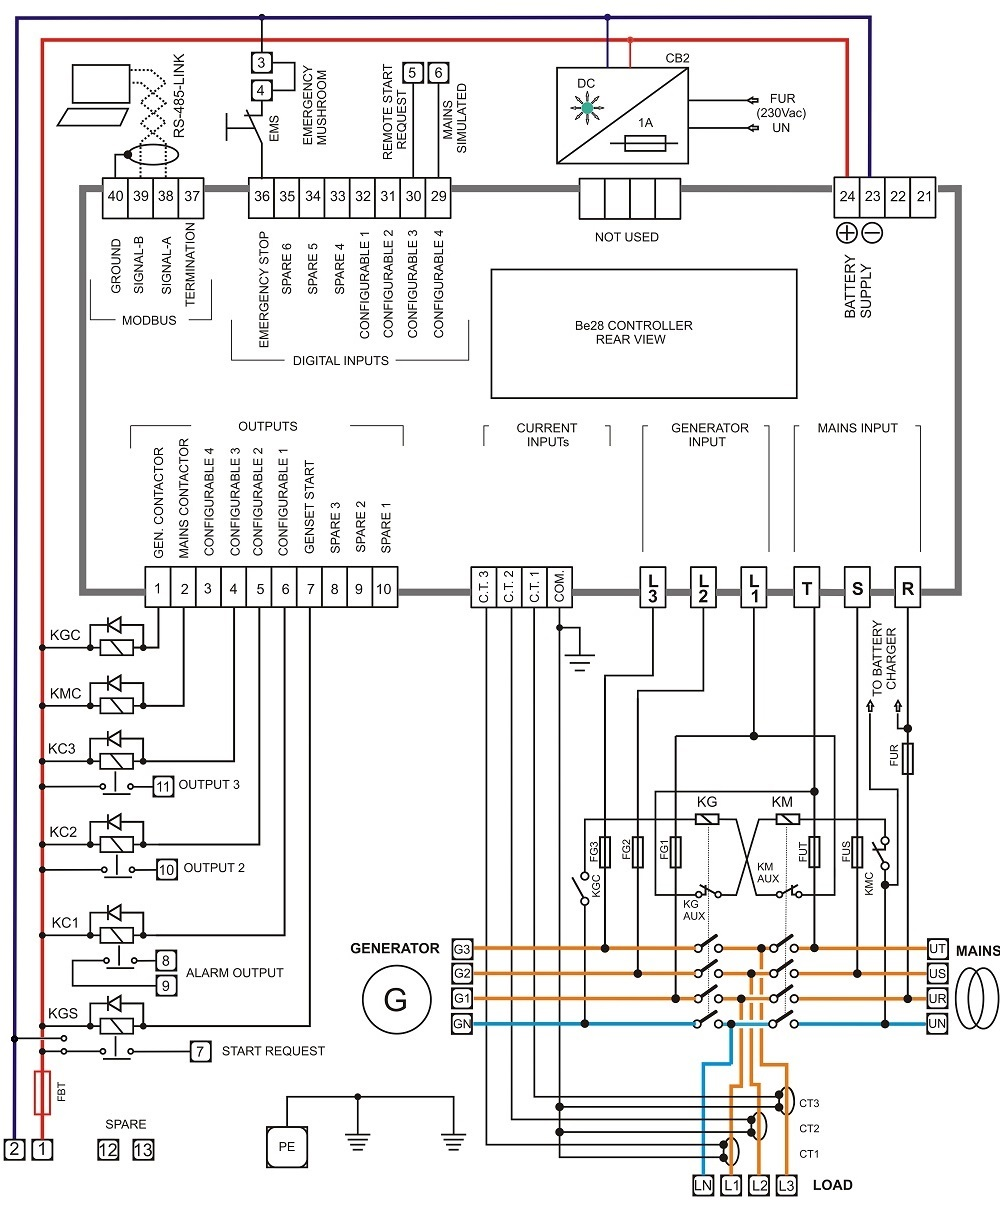 hight resolution of ats wiring diagram wiring diagram operationswiring diagram for ats wiring diagram sample ats wiring diagram ats